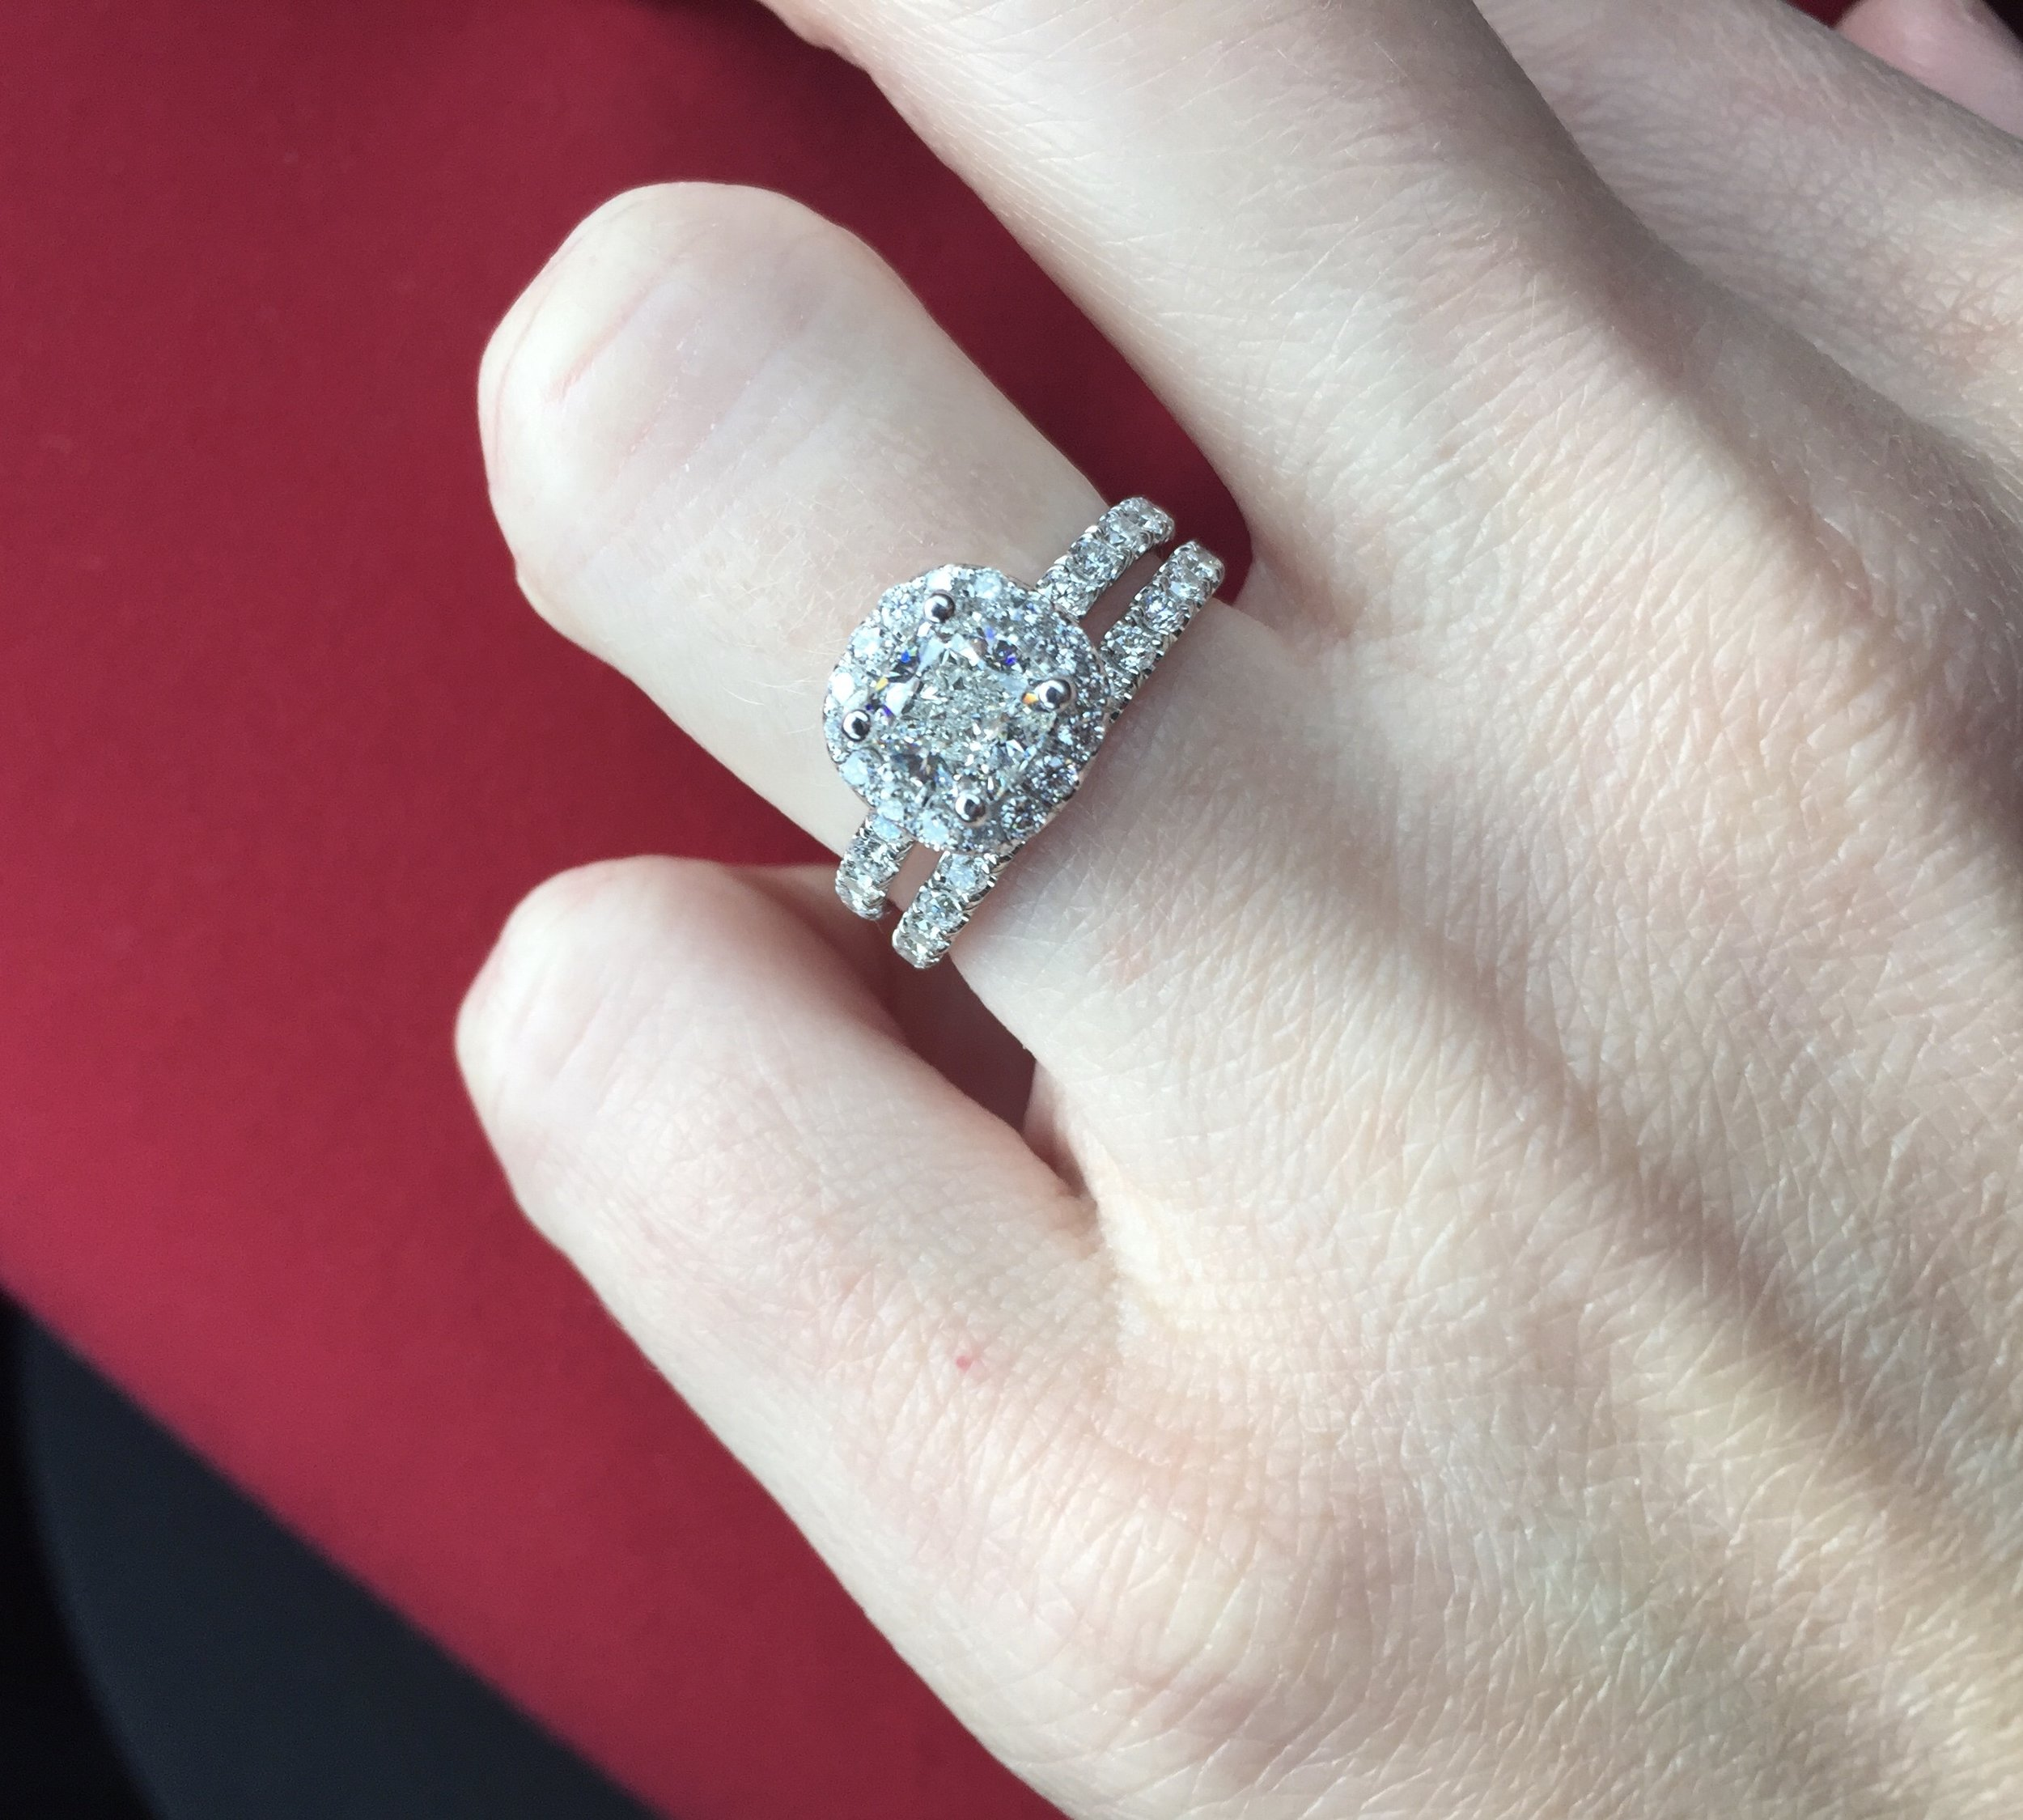 Places That Buy Wedding Rings 75 Simple The Best Places to